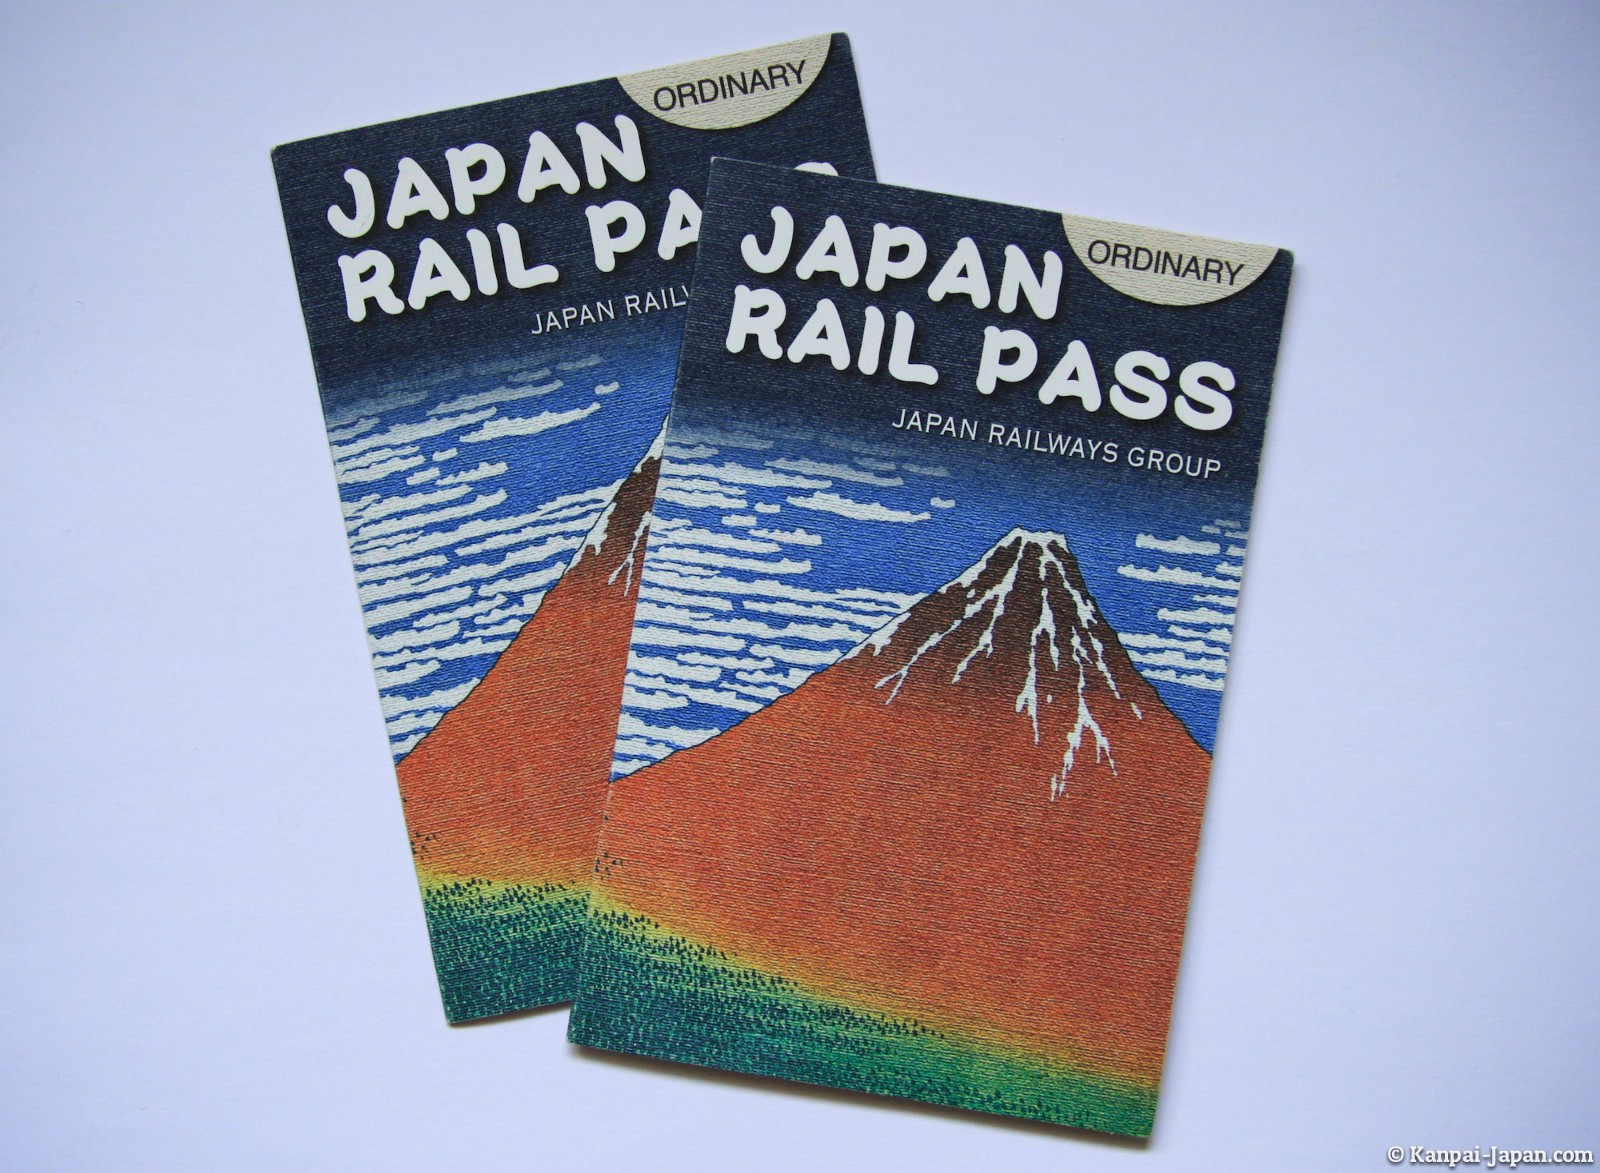 JAPAN RAIL PASS: How to Buy and Use